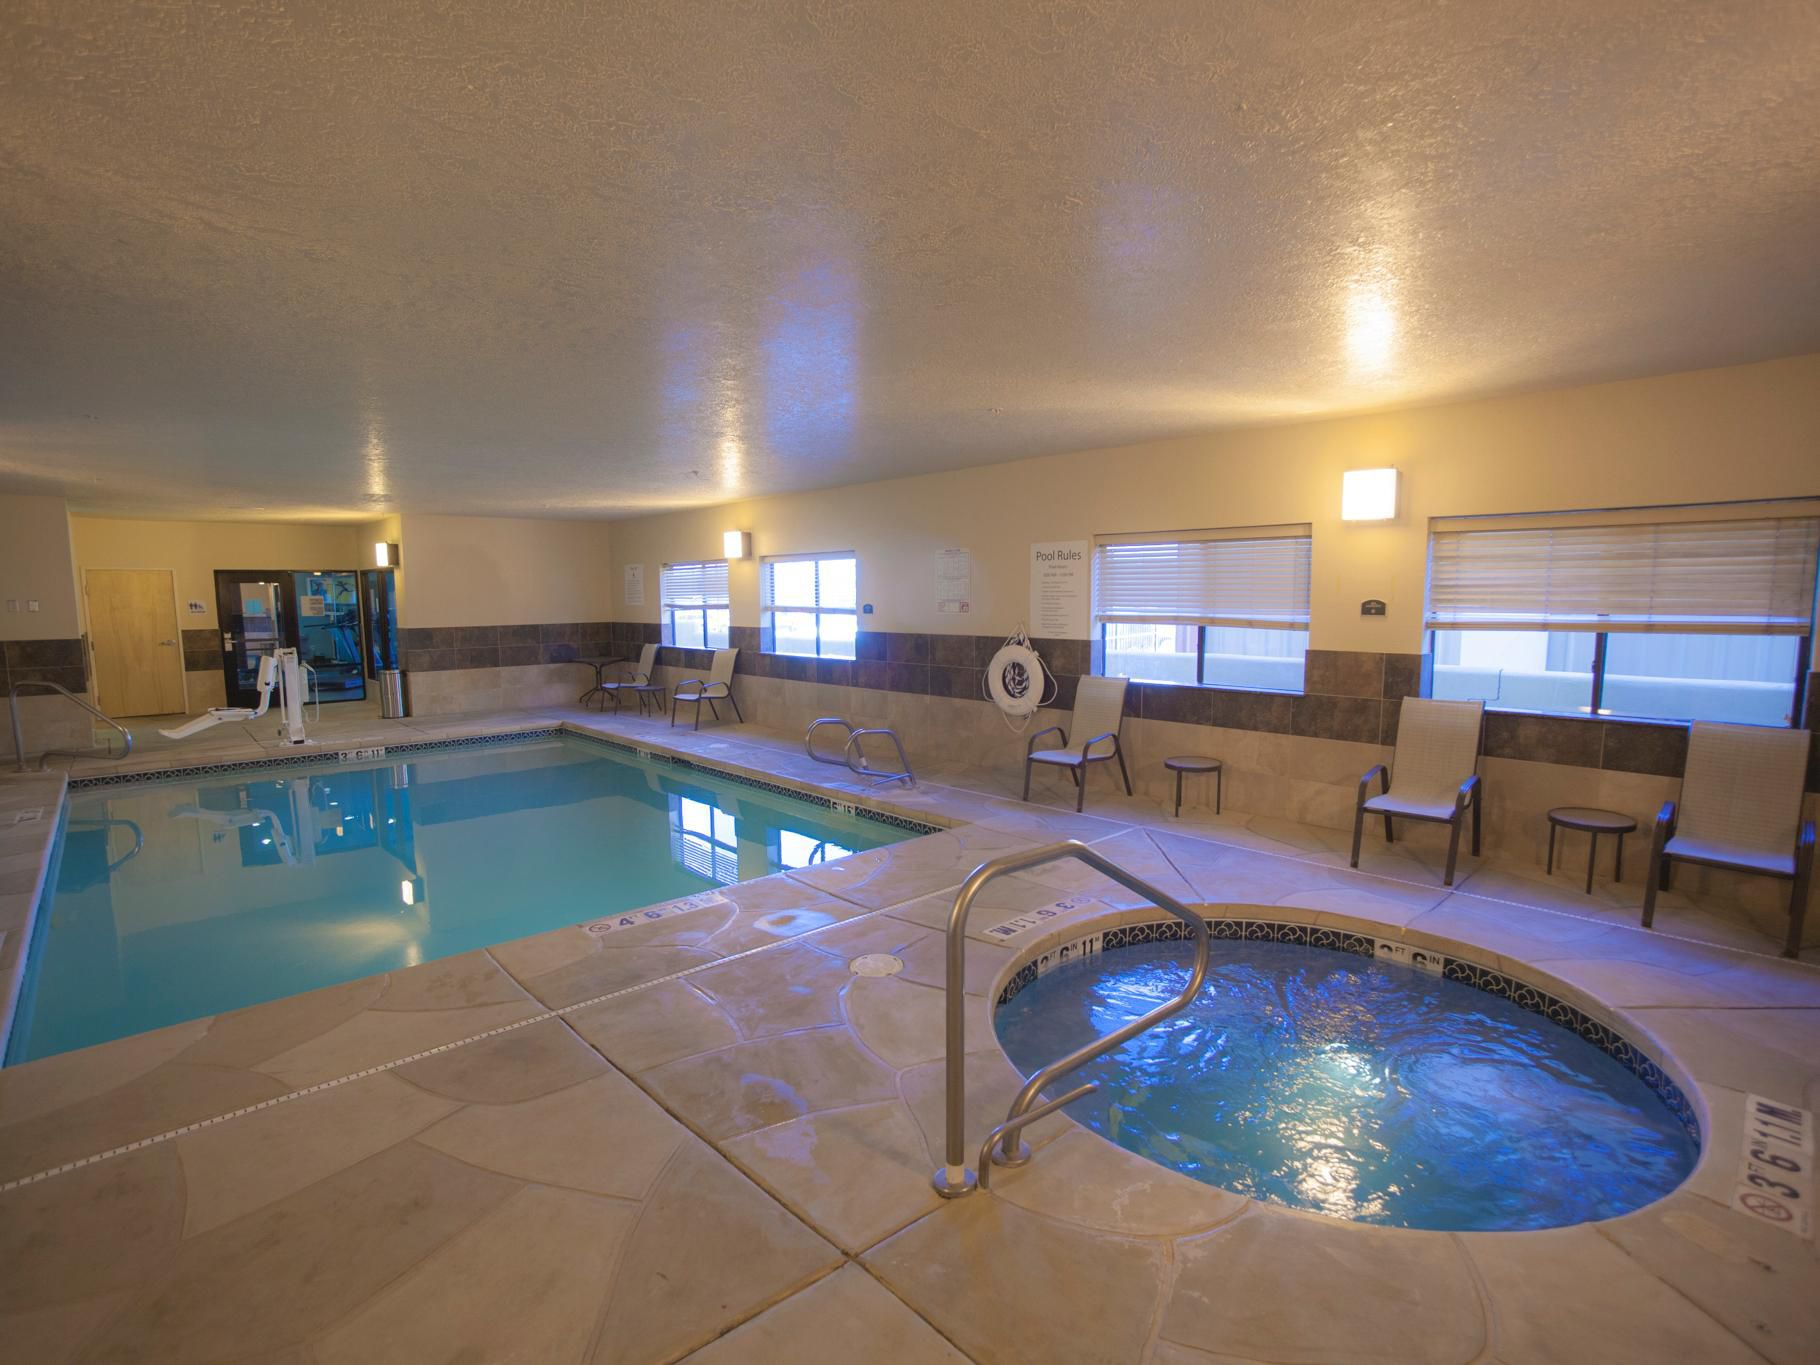 Leave worries behind and unwind at our pool and hot tub